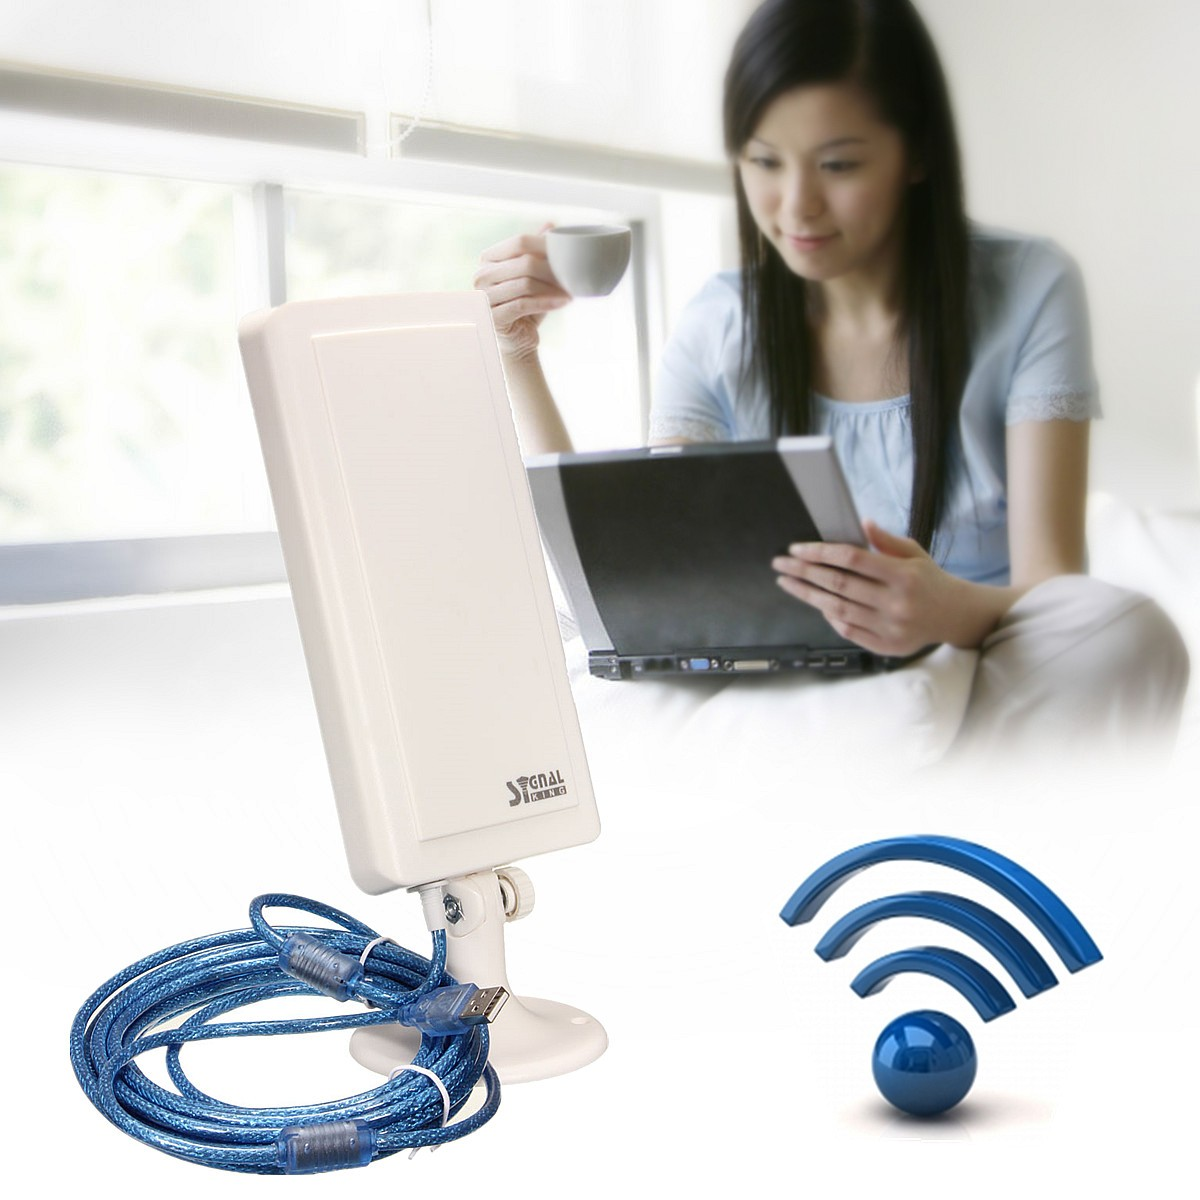 2.4GHz 150Mbps WiFi Antenna 2500m Long Distance Range Wireless Extender Booster Repeater USB Adapter